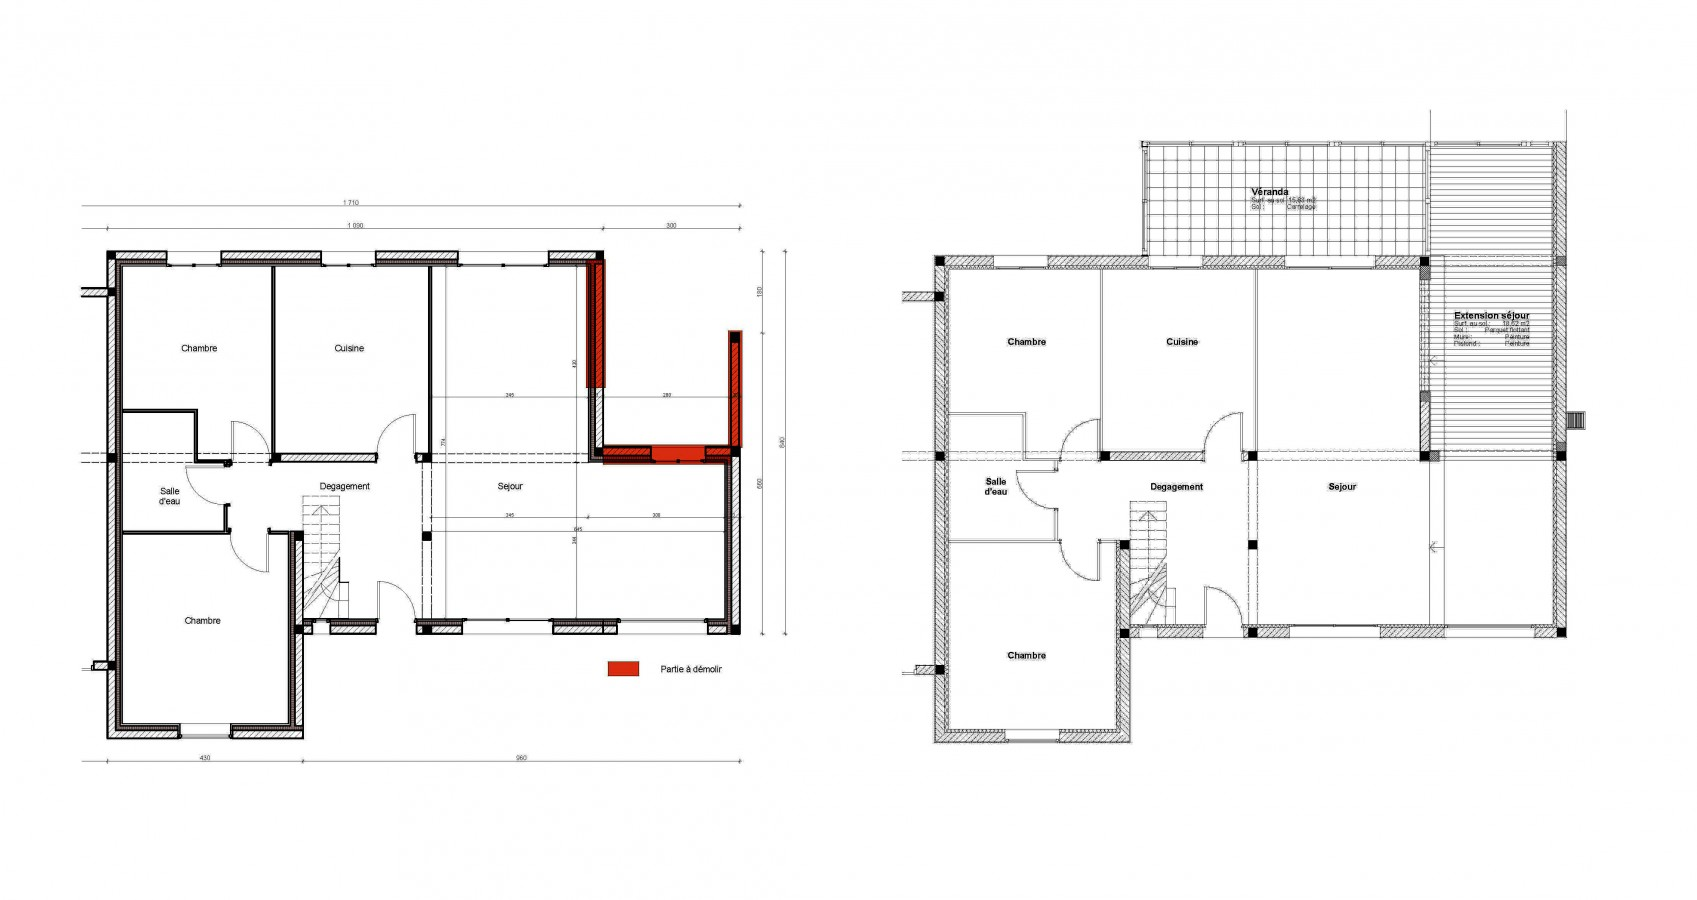 Plan architecte agrandissement maison maison moderne for Agrandissement maison plan